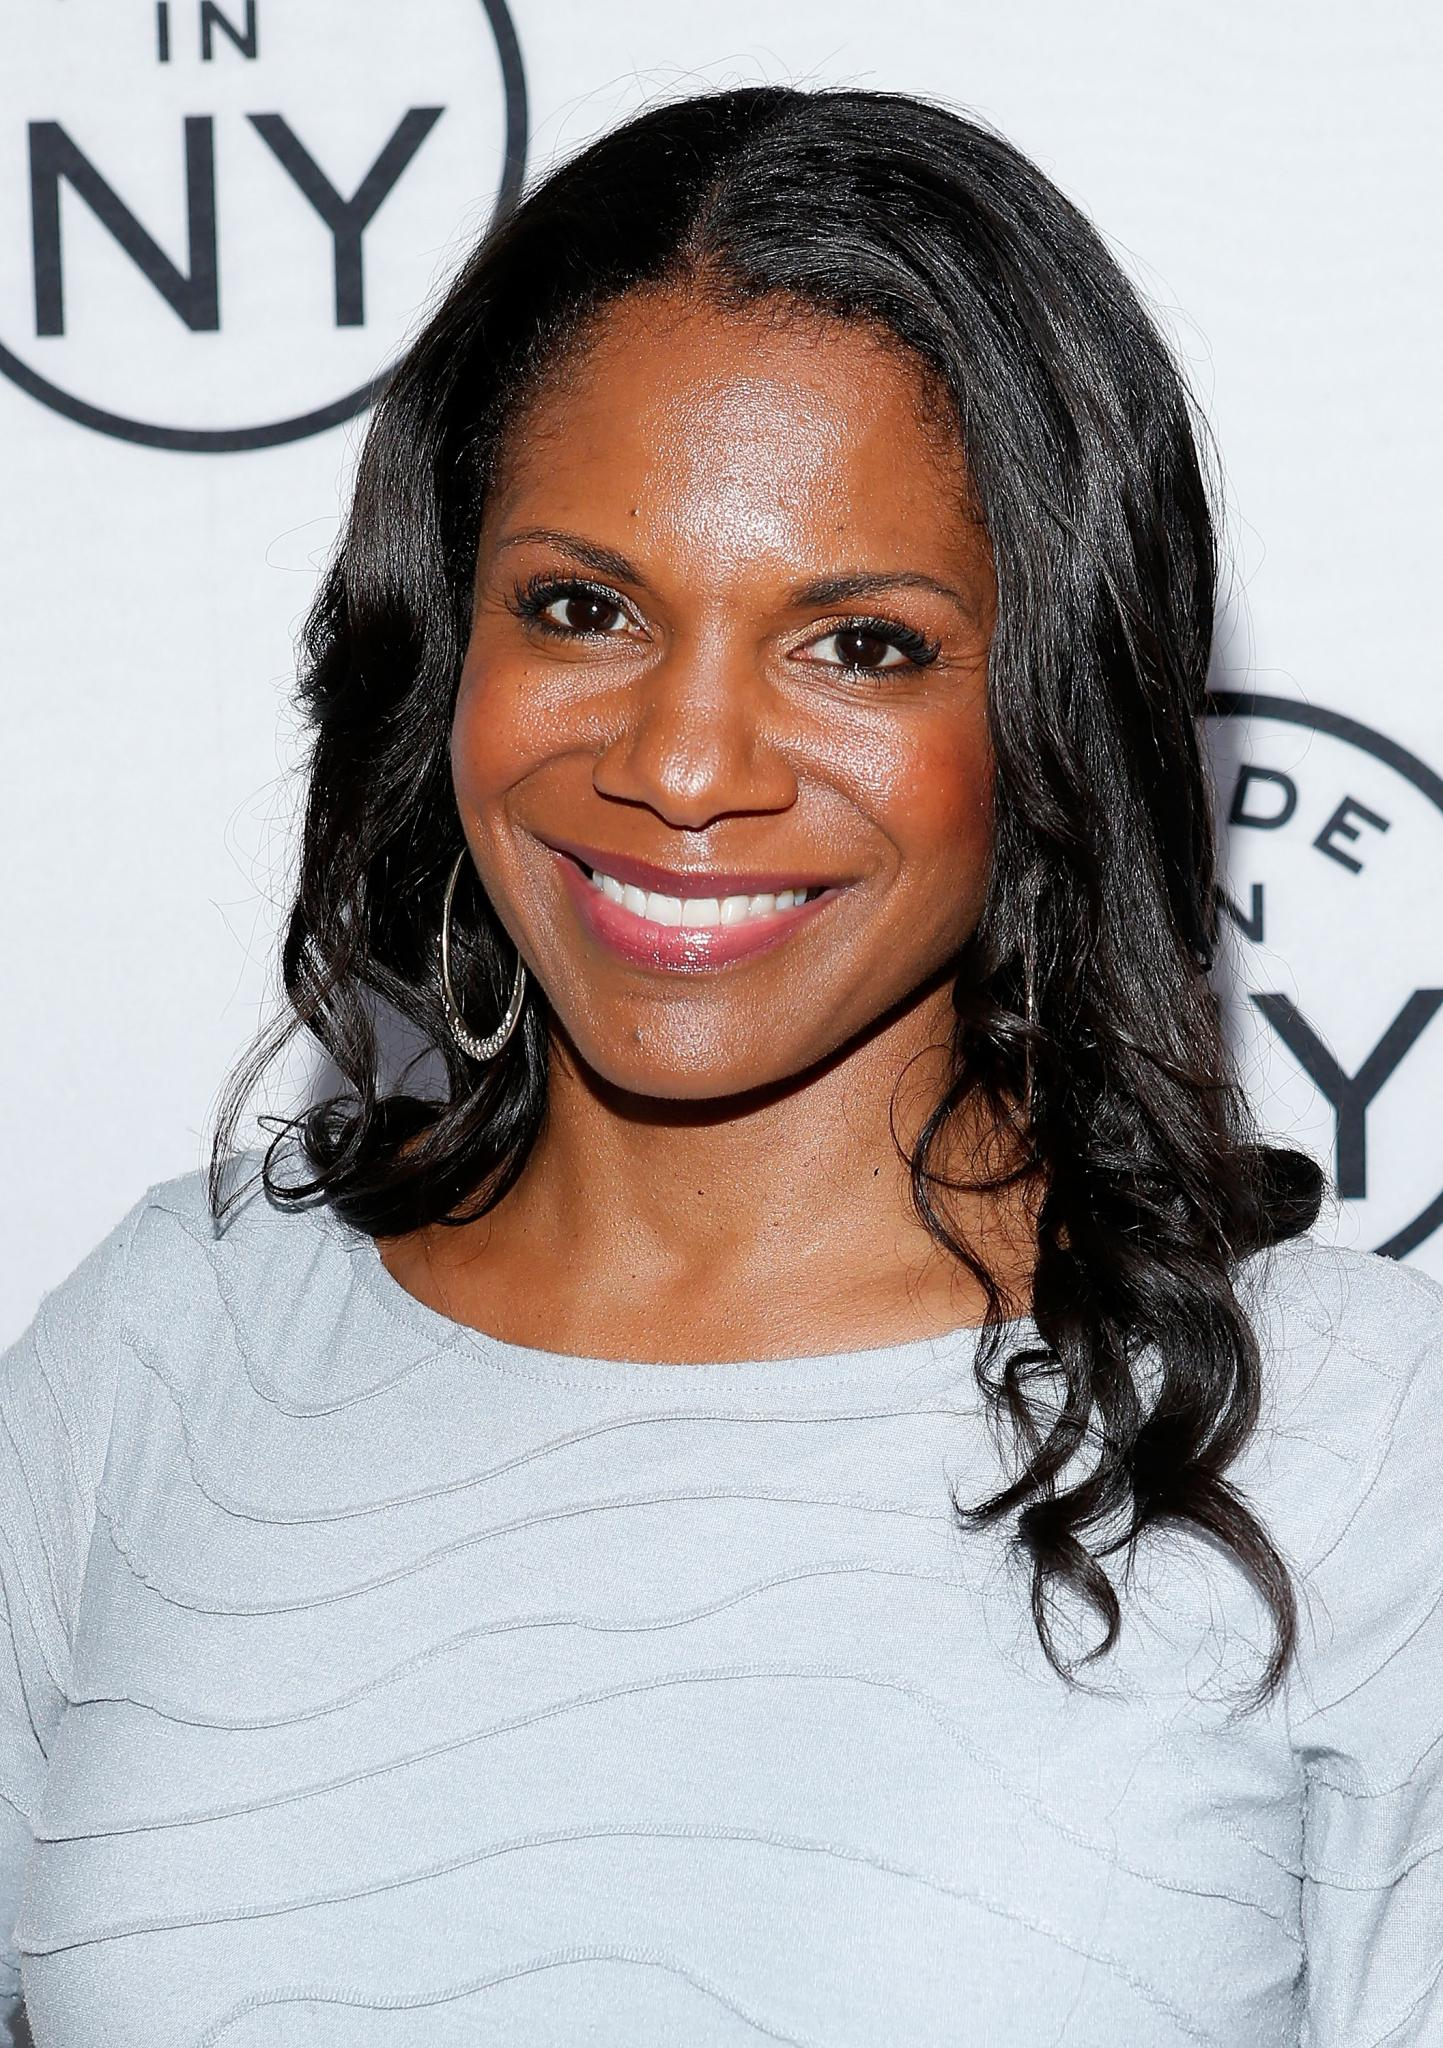 Audra McDonald Announces Pregnancy and Maternity Leave from Broadway's 'Shuffle Along'